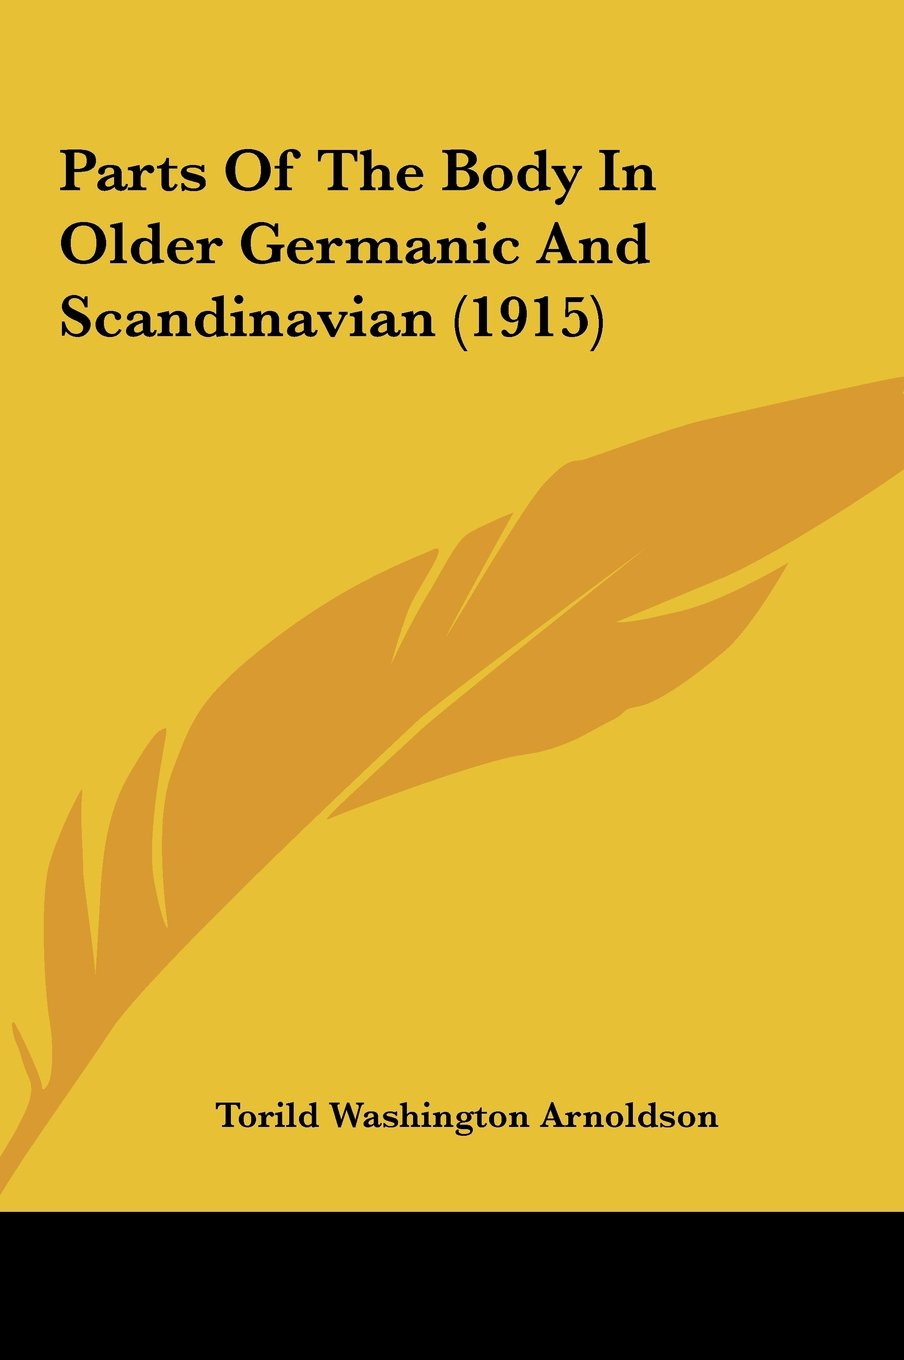 Download Parts Of The Body In Older Germanic And Scandinavian (1915) pdf